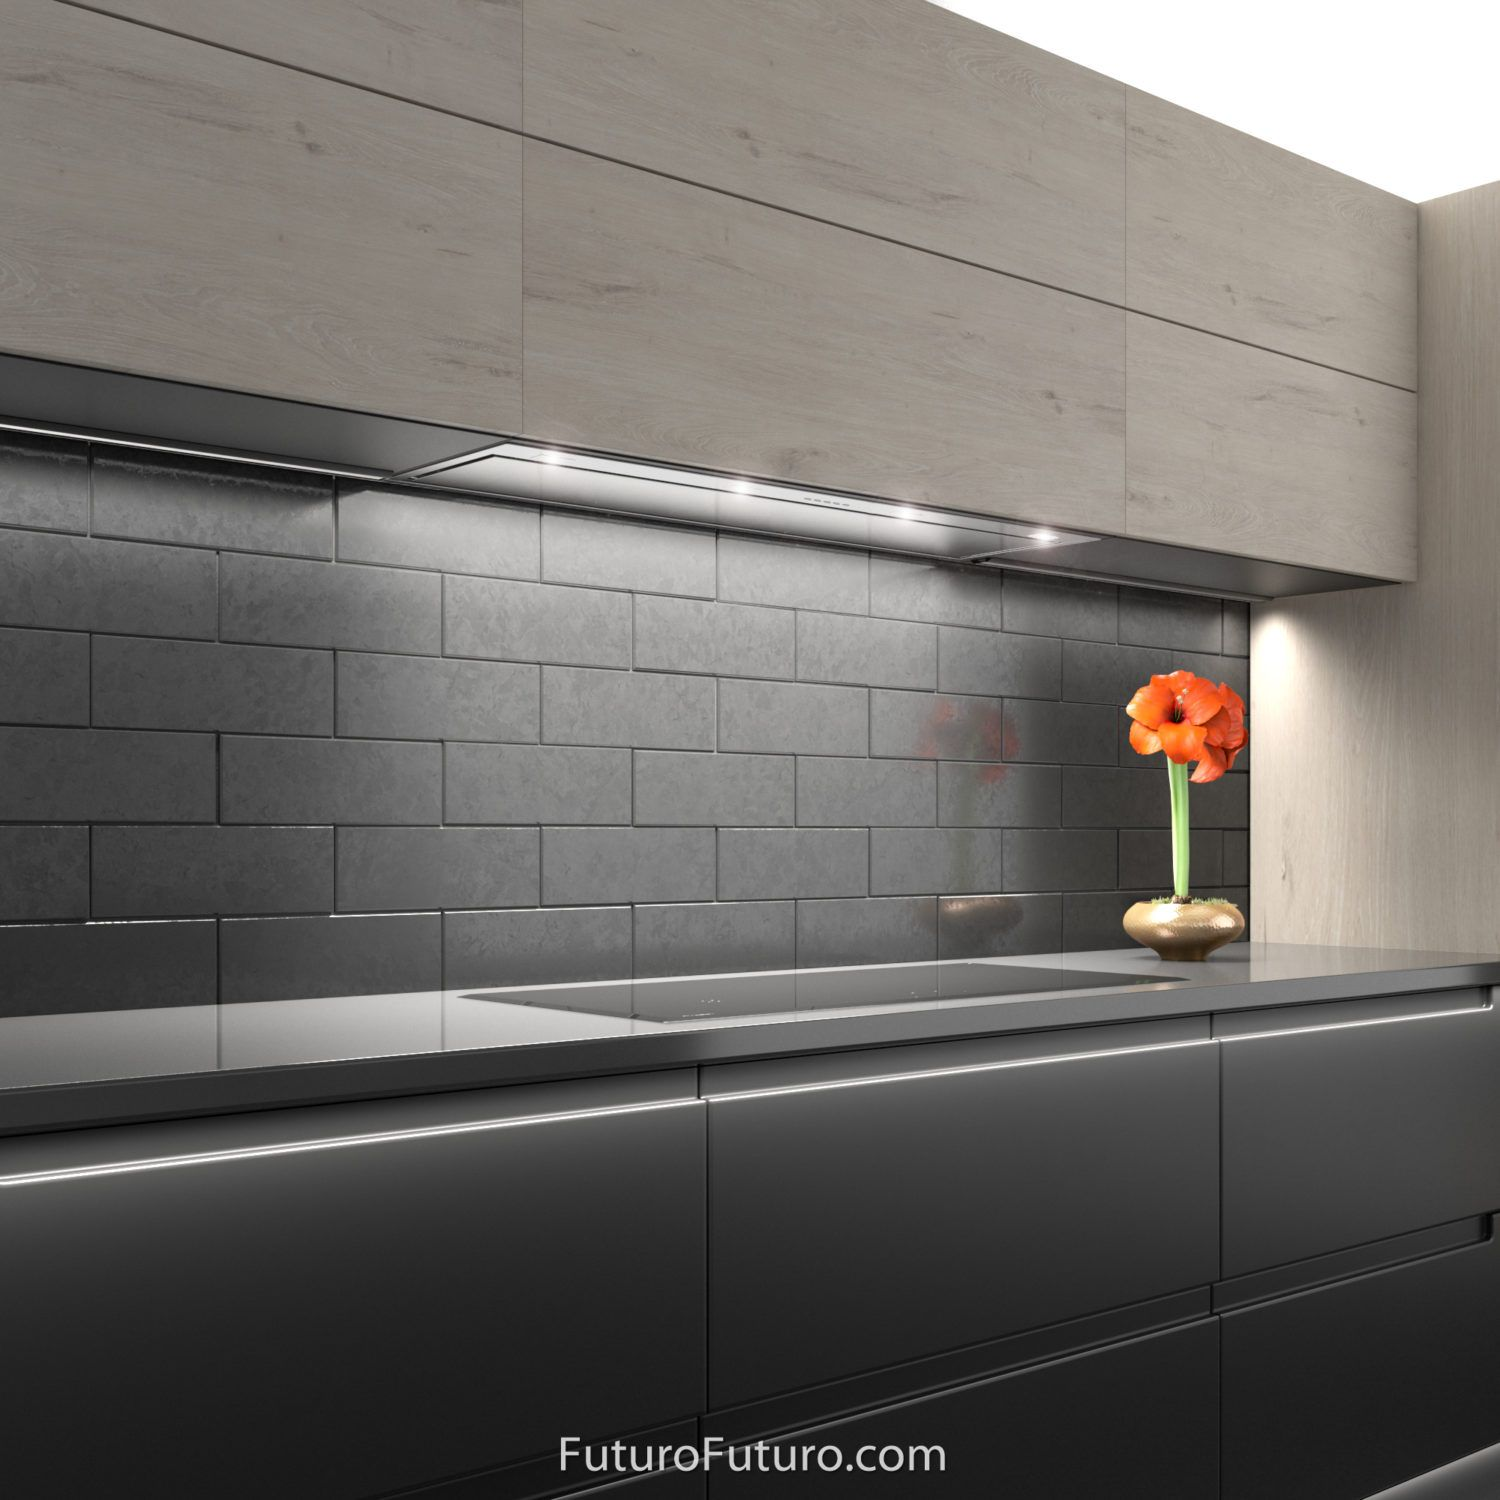 42 Insert Liner Wall The Perfect Ventilation Solution For Custom Cabinetry A Complete Range Hood Insert With Range Hood Kitchen Hoods Kitchen Range Hood